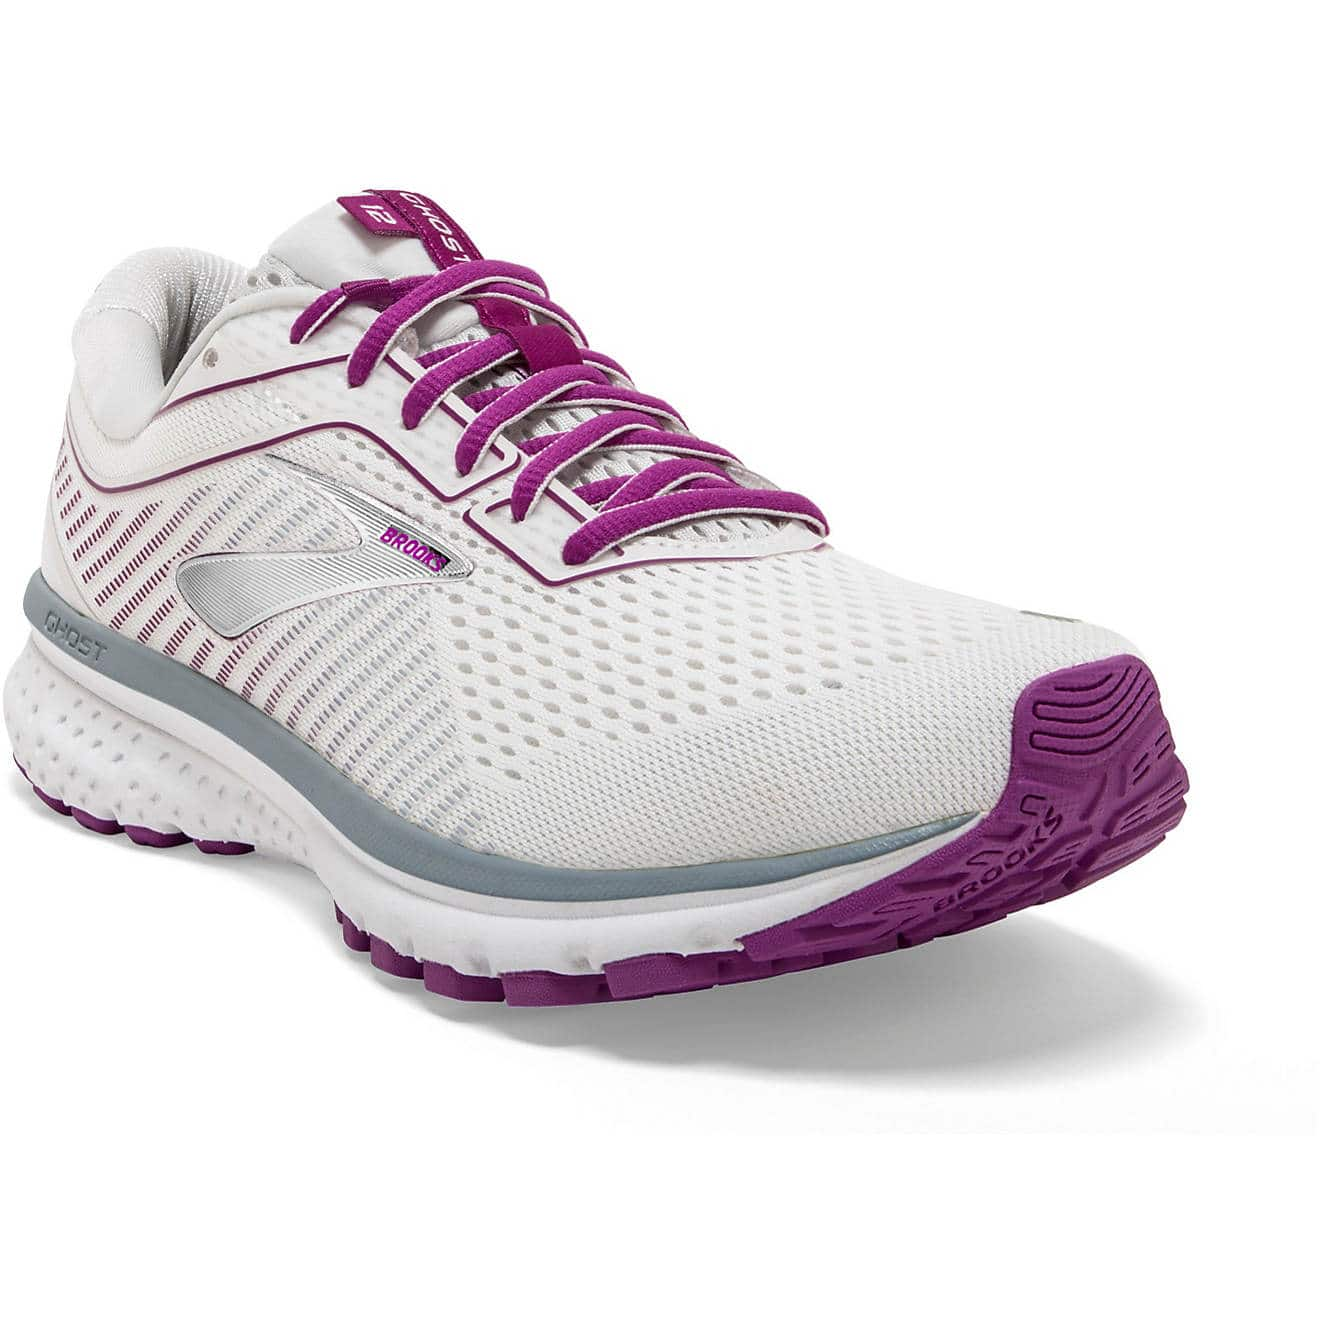 Brooks Women's Ghost 12 Running Shoes (White/Gray/Hollyhock) $45 + free shipping (now limited sizes only)